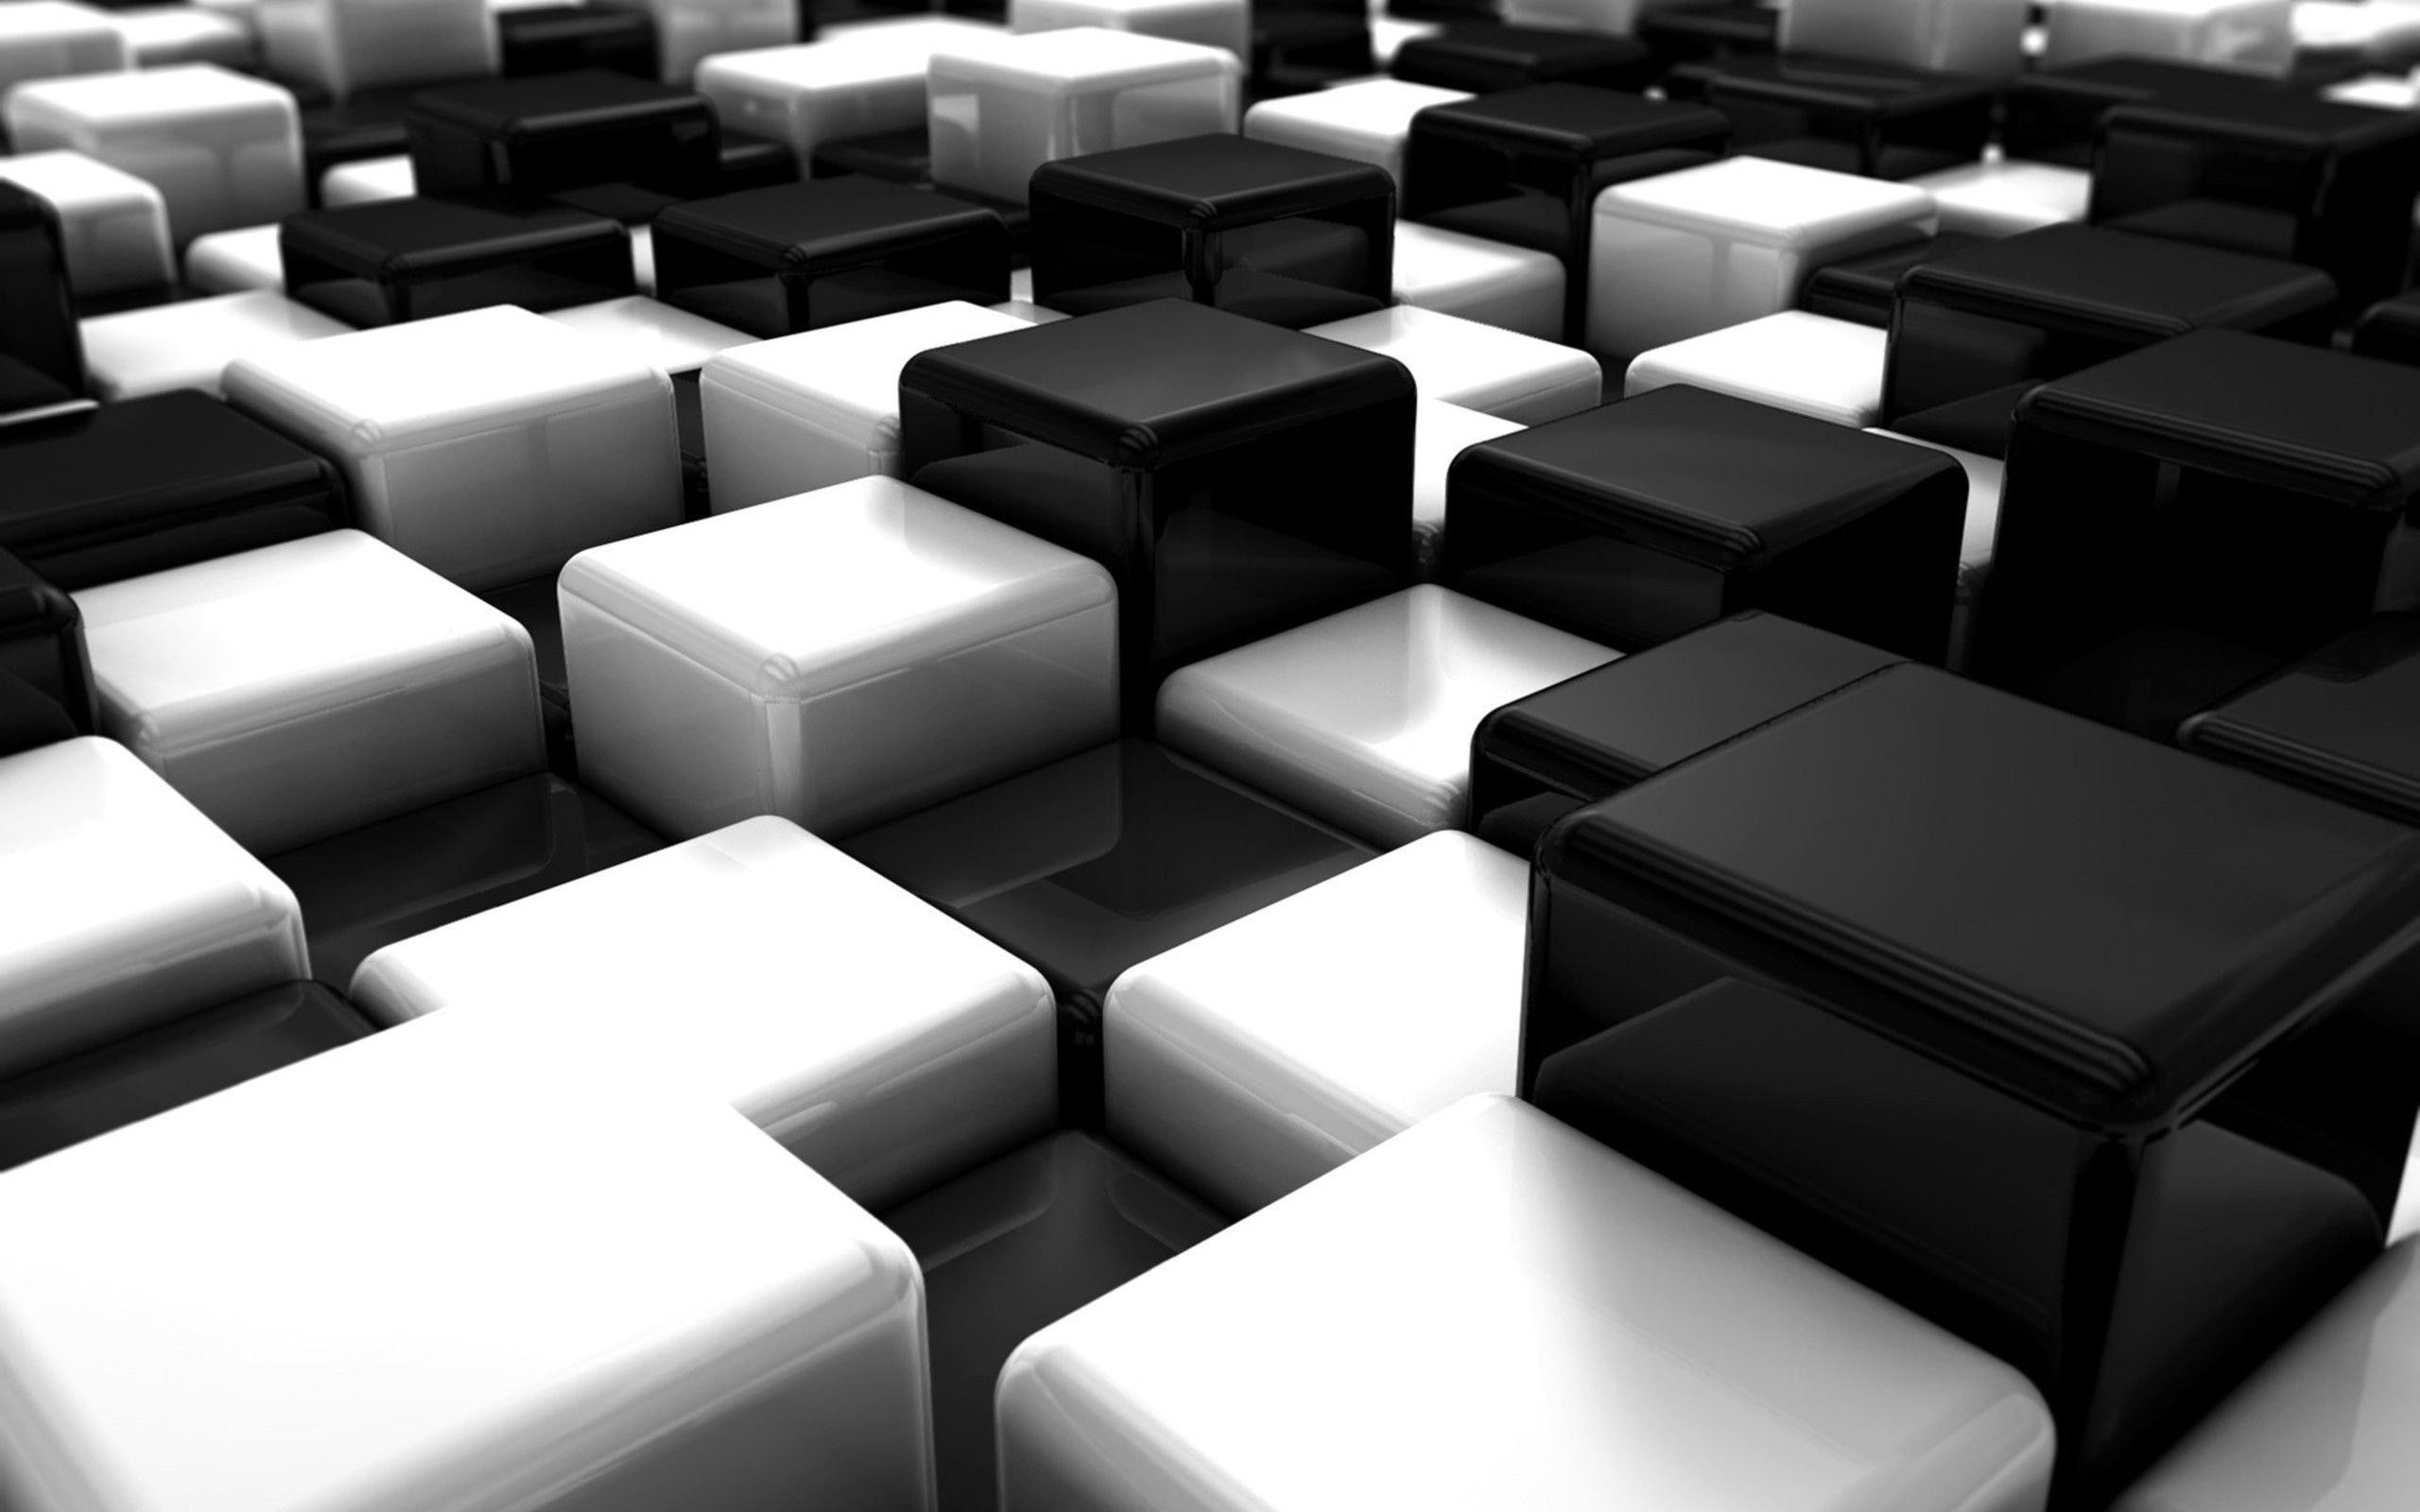 awesome abstract black white blocks cubes digital art hd resolution  wallpaper